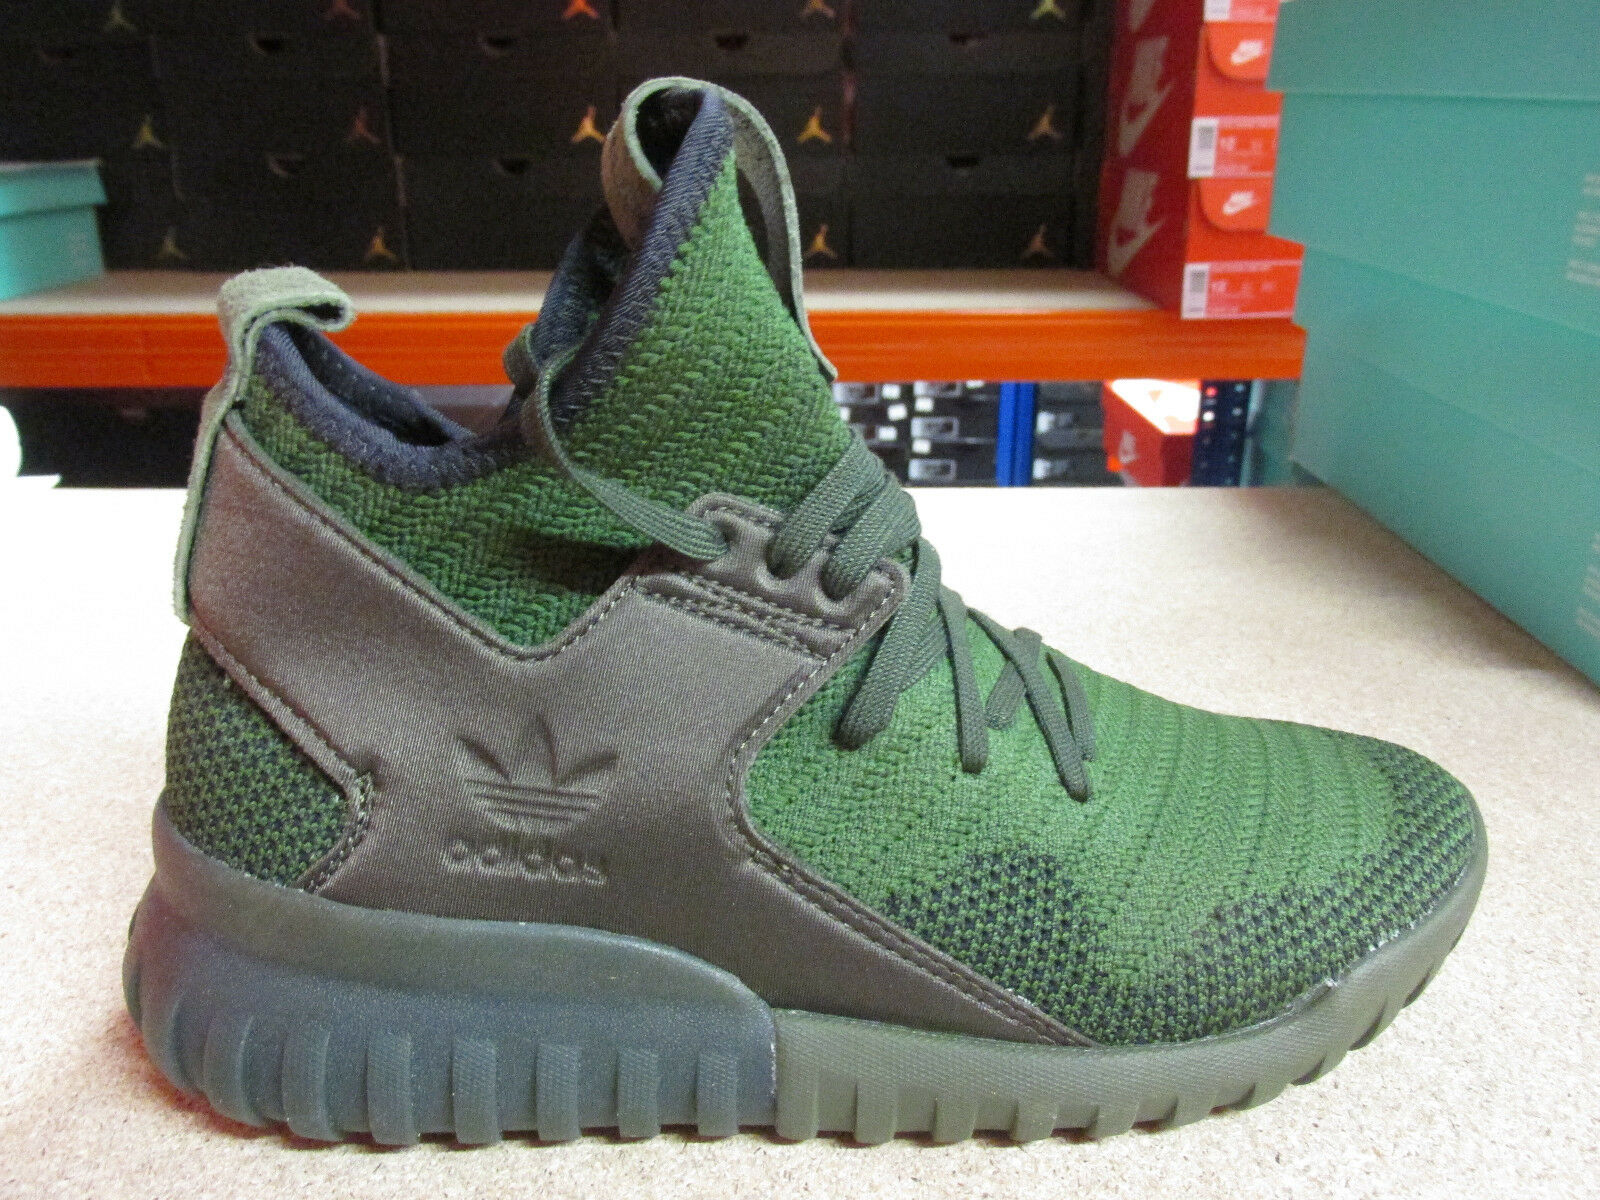 Adidas Originals Tubular X PK  Herren S76713 Hi Top Schuhes Trainers Sneakers Schuhes Top ec5c59